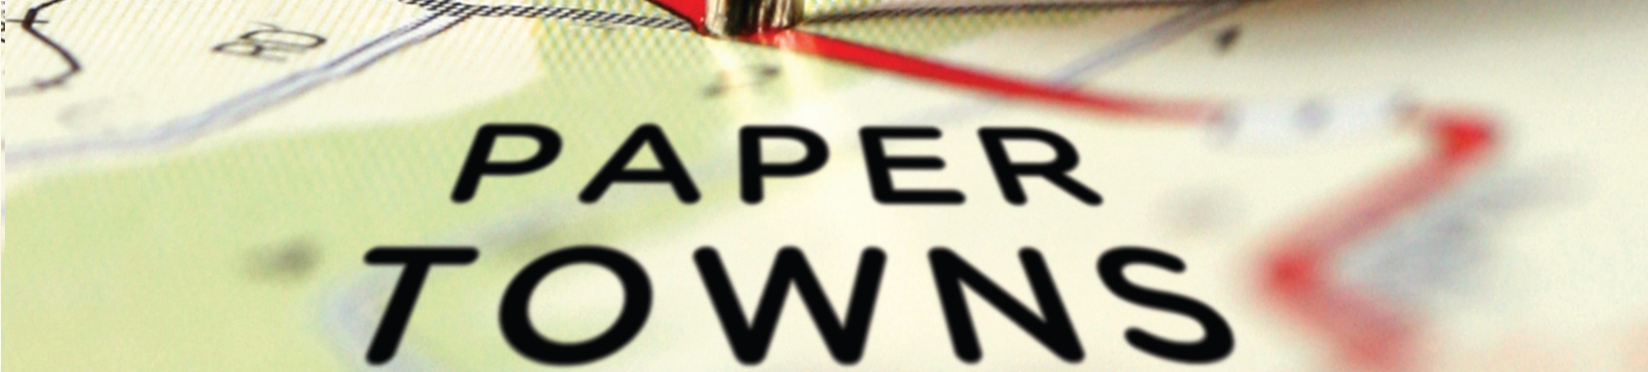 papertowns banner